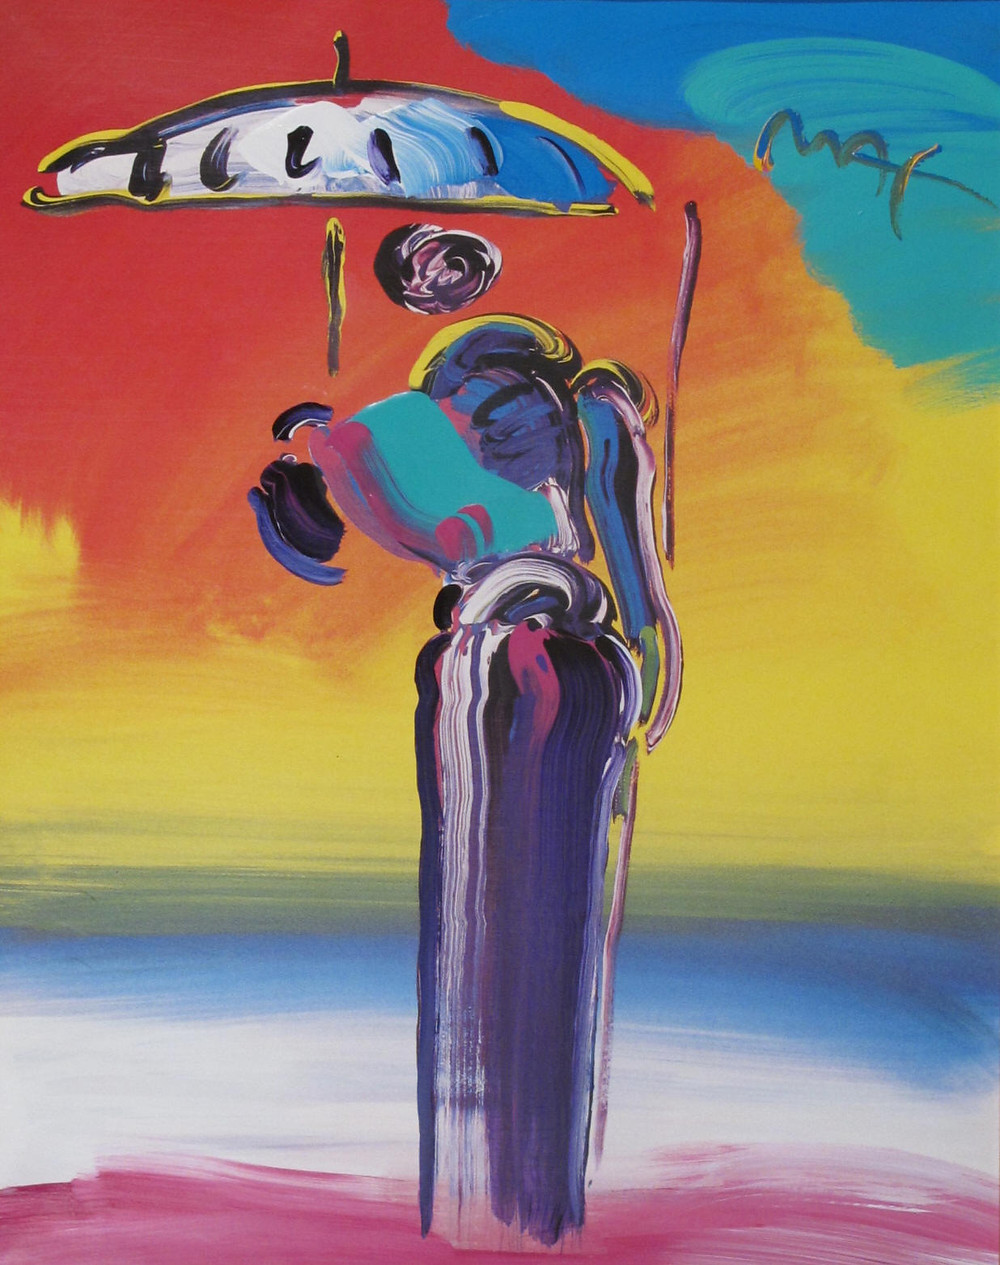 Peter max umbrella.jpg